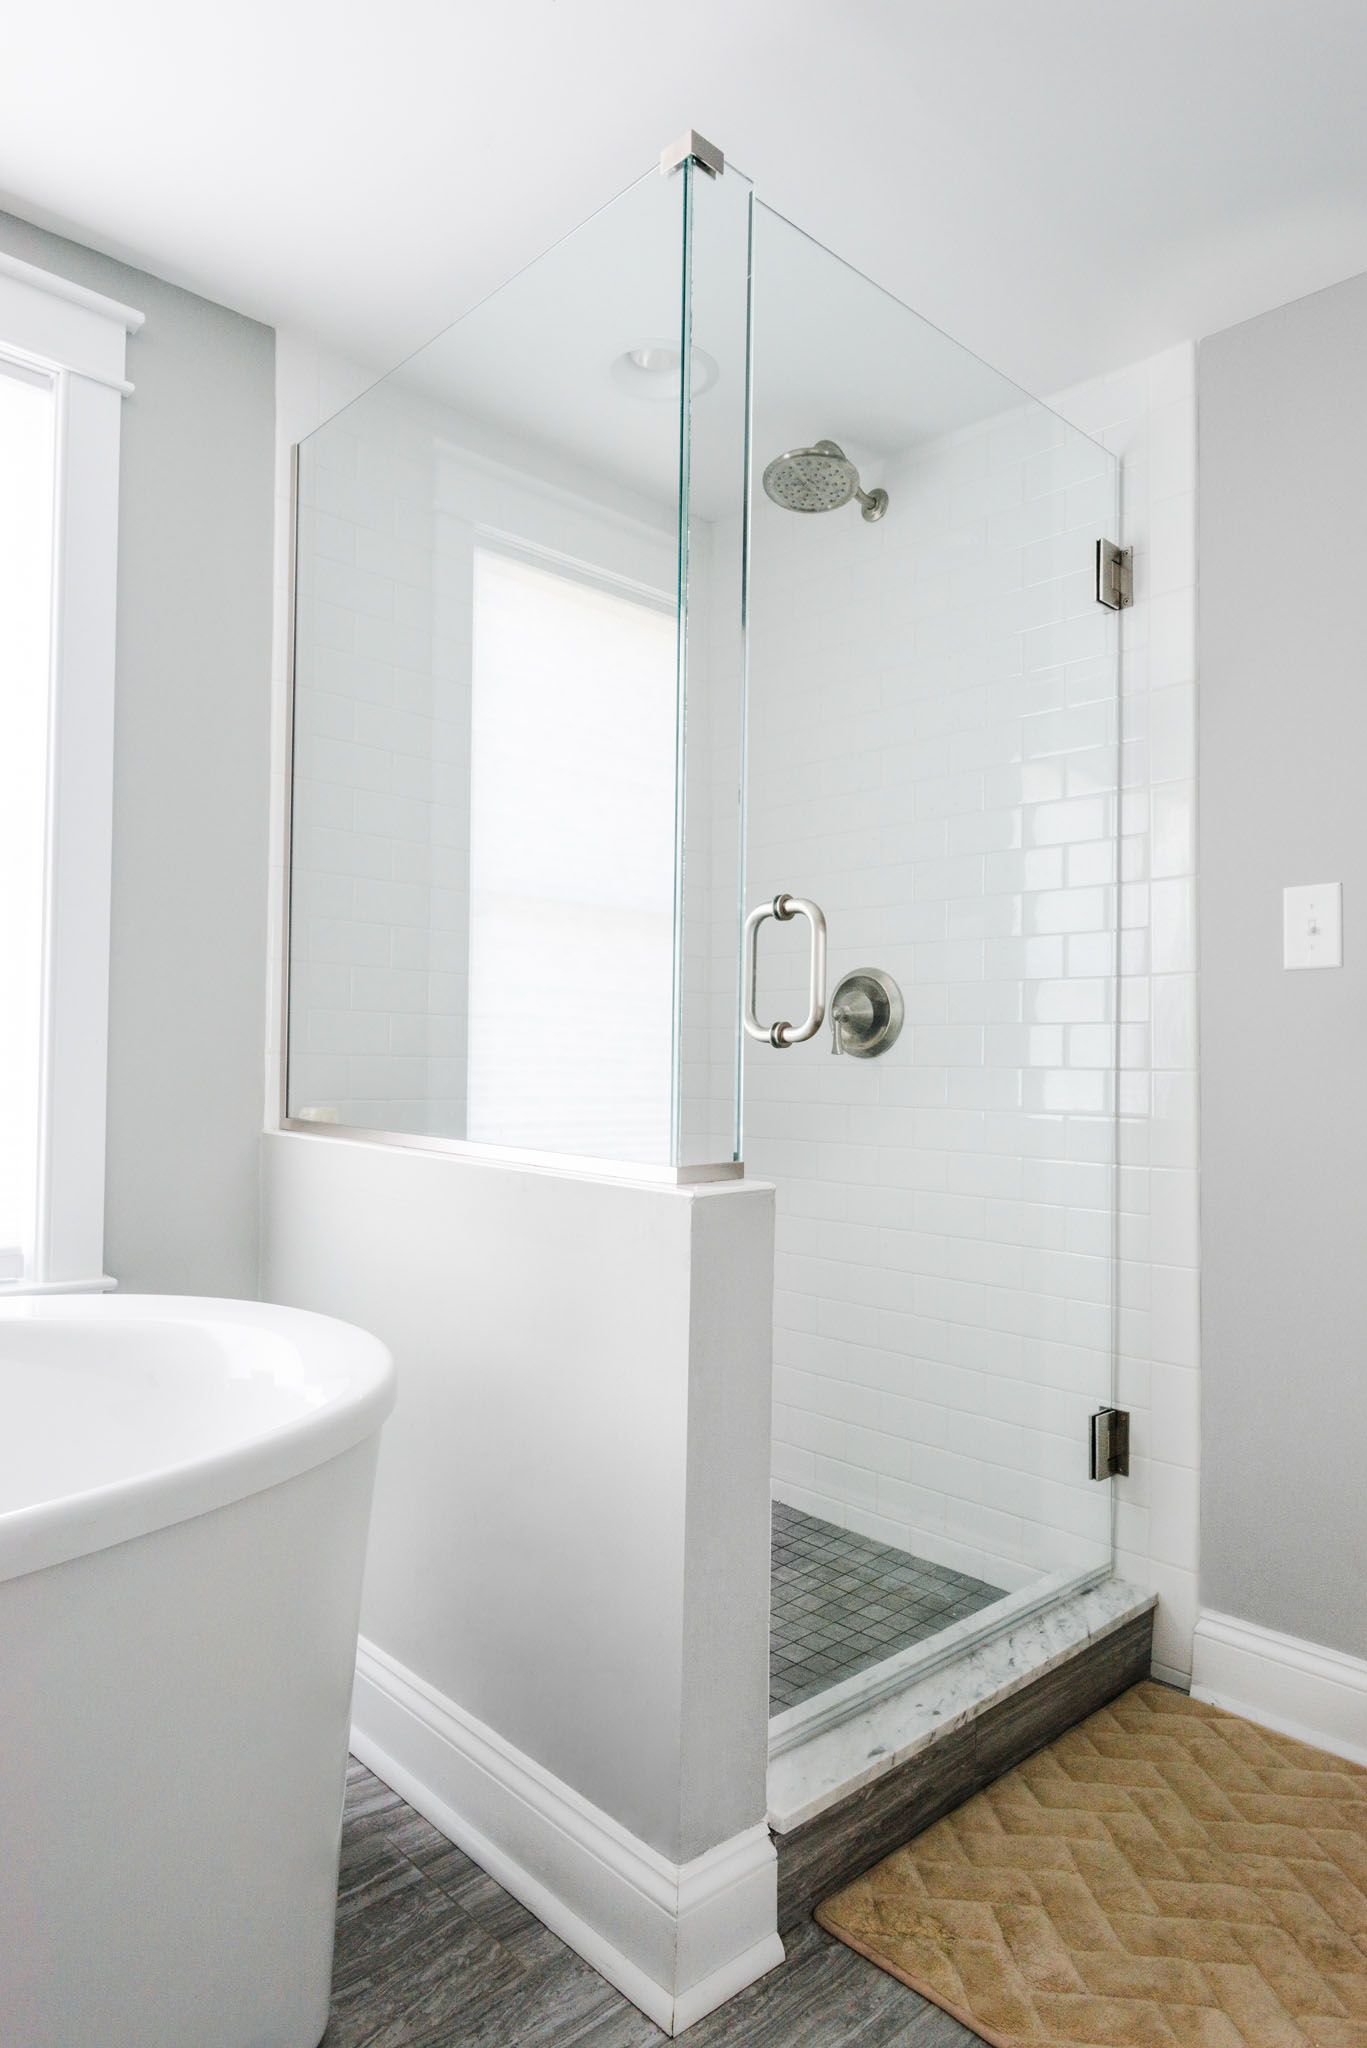 Brothers Services Is Maryland S Full Service Remodeler And Contractor White Subway Tile Shower Bathrooms Remodel Walk In Shower [ 2048 x 1367 Pixel ]